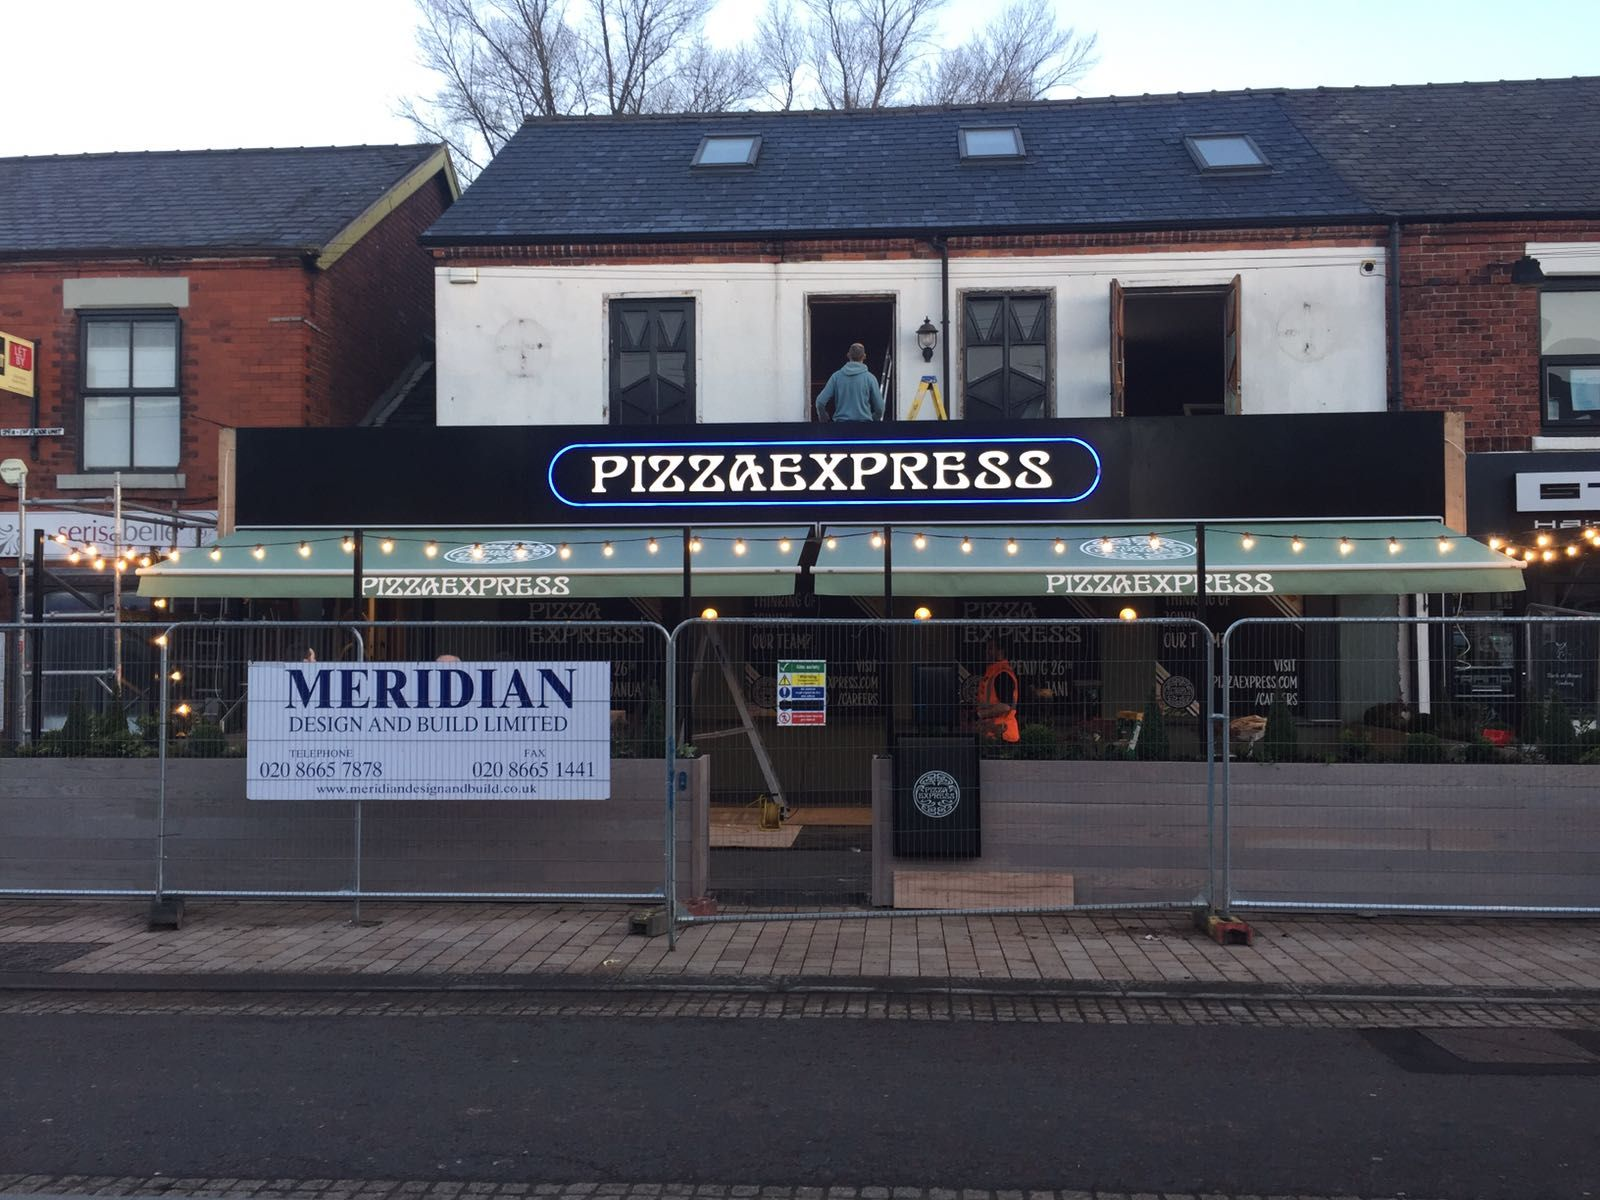 New Awnings For Pizza Express In Stockport Even Behind The